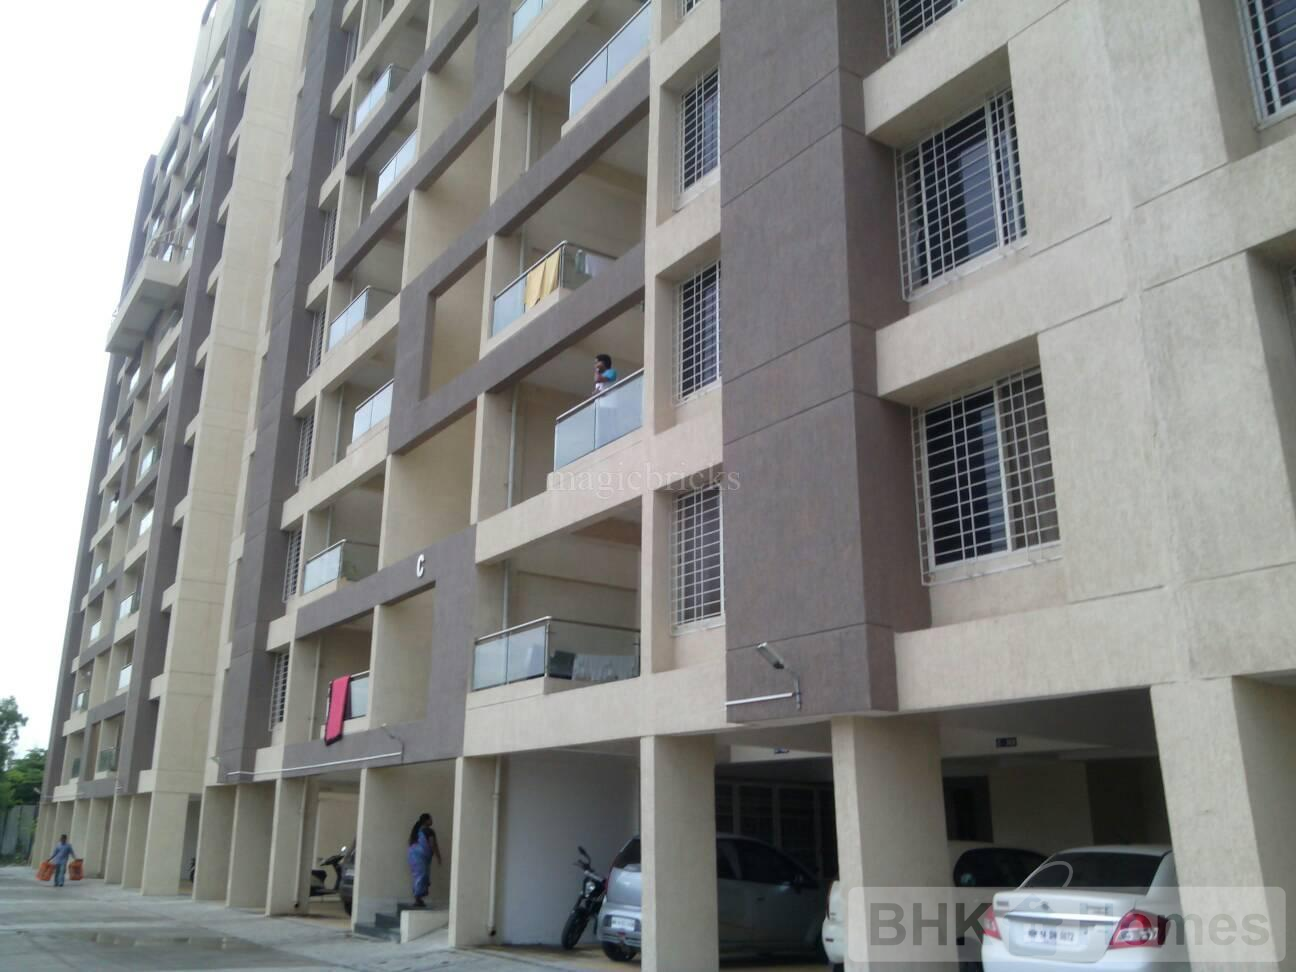 3 BHK Flat for sale in Tathawade, Pune